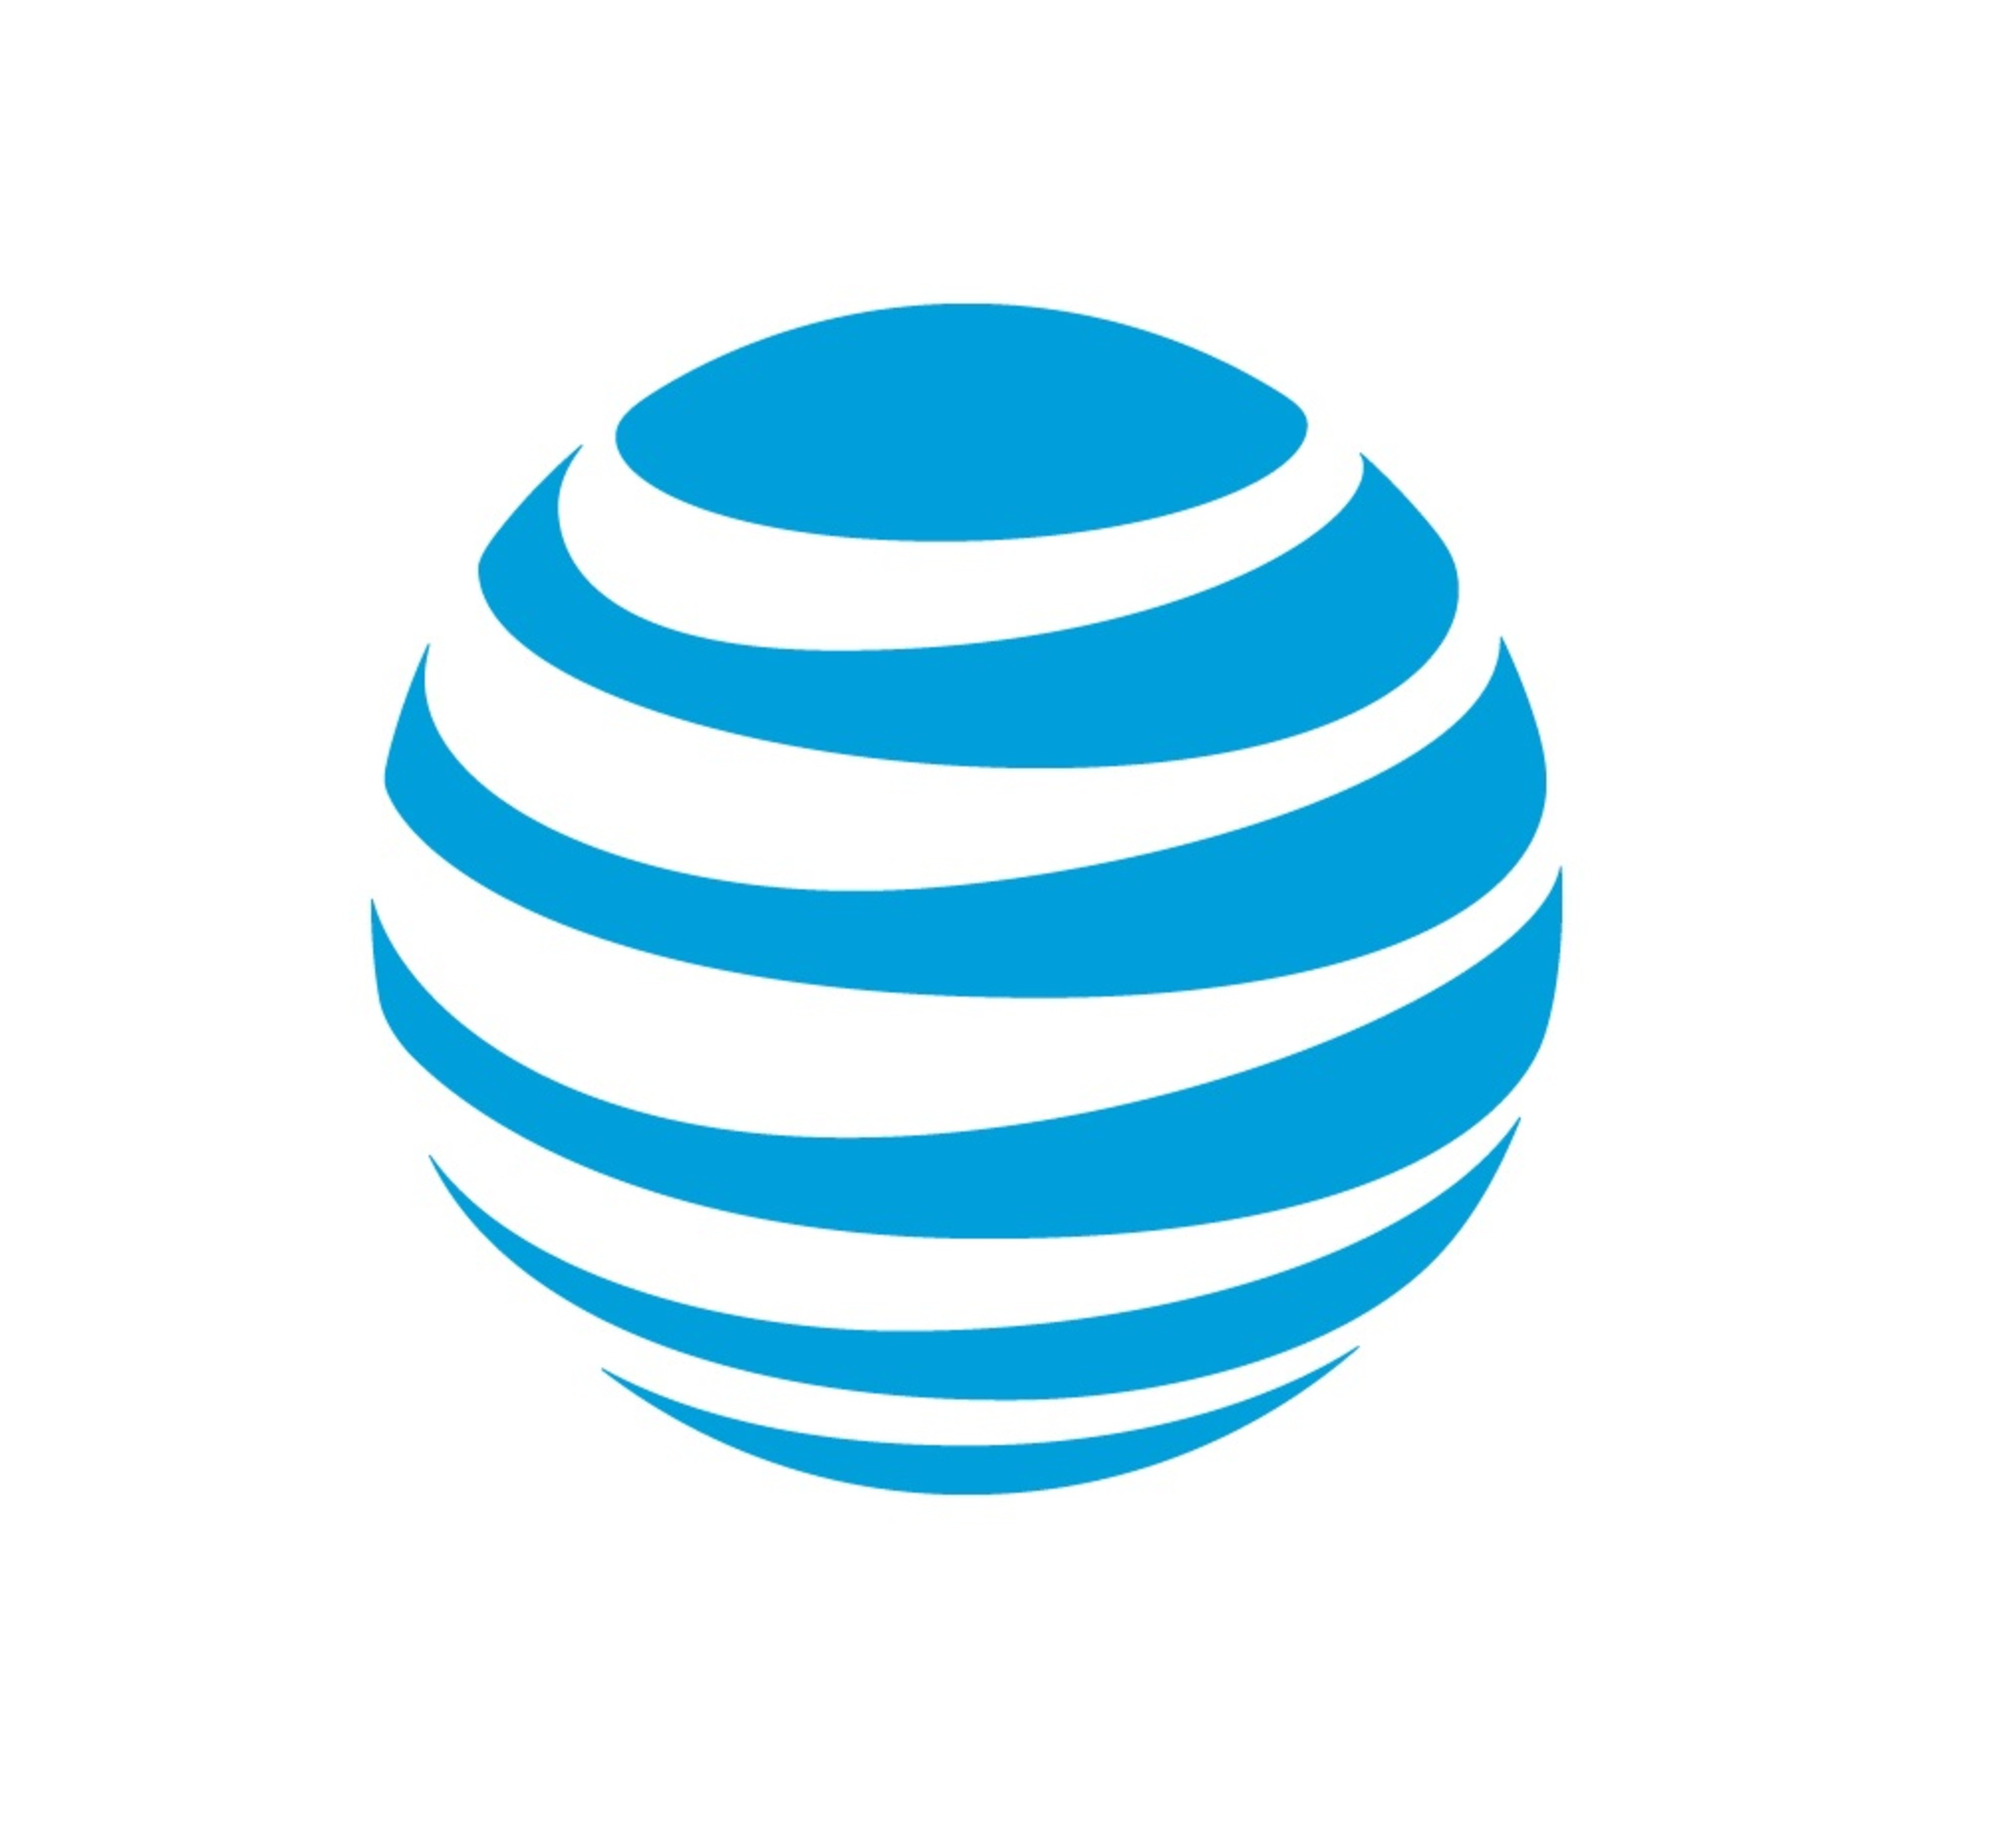 AT&T Invests More Than $35 Million Over 3-Year Period to Enhance Local Networks in the Harrisburg area